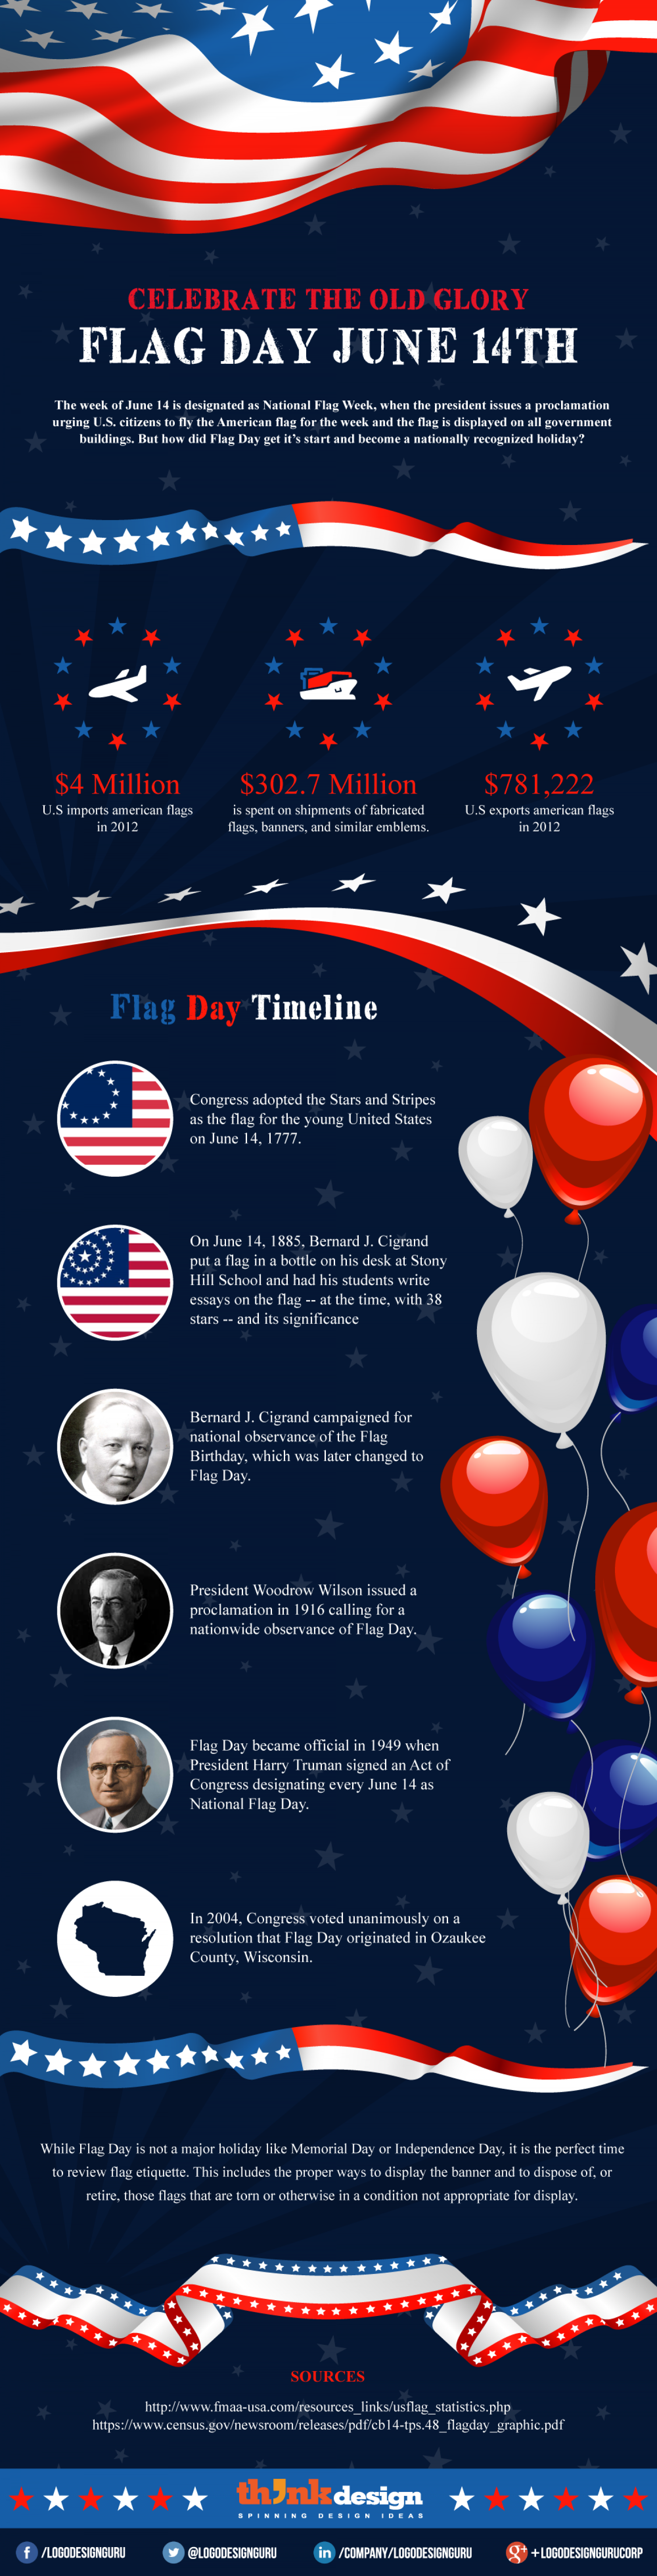 Celebrating the Old Glory Infographic